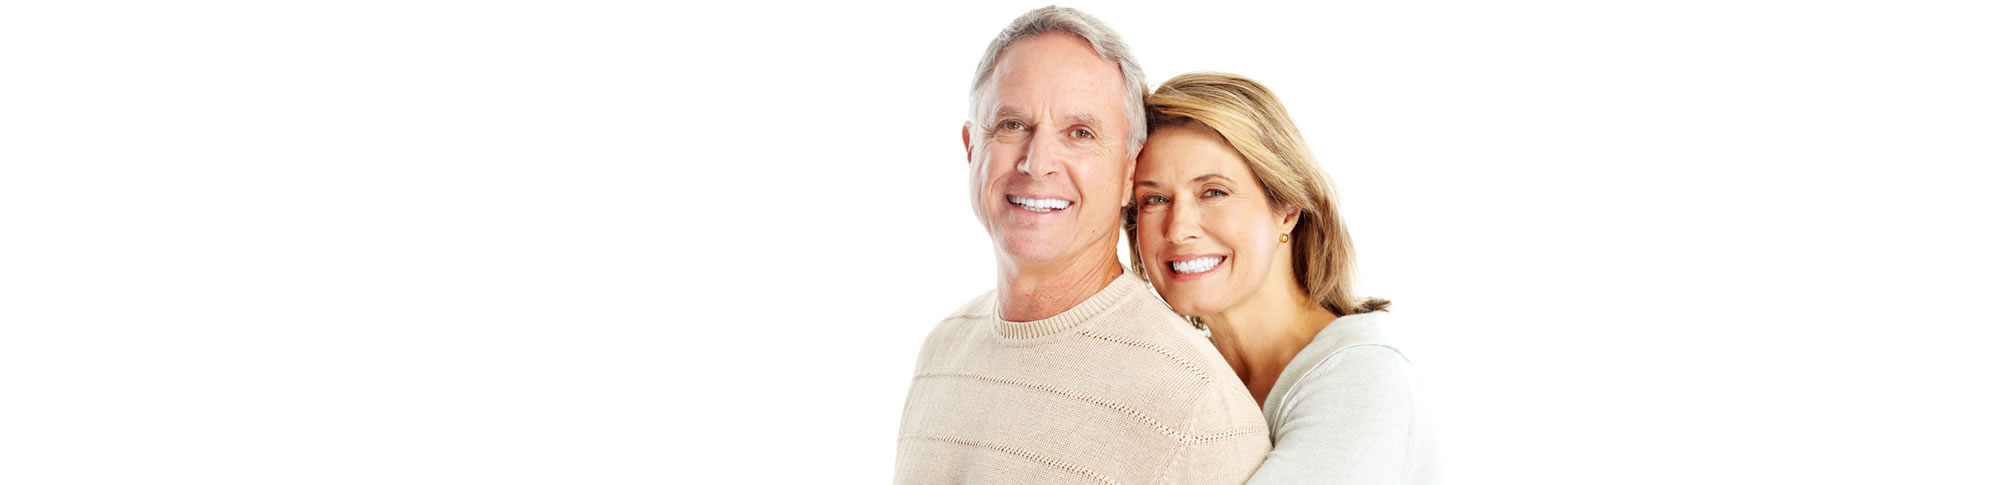 dental-implants-aventura-min